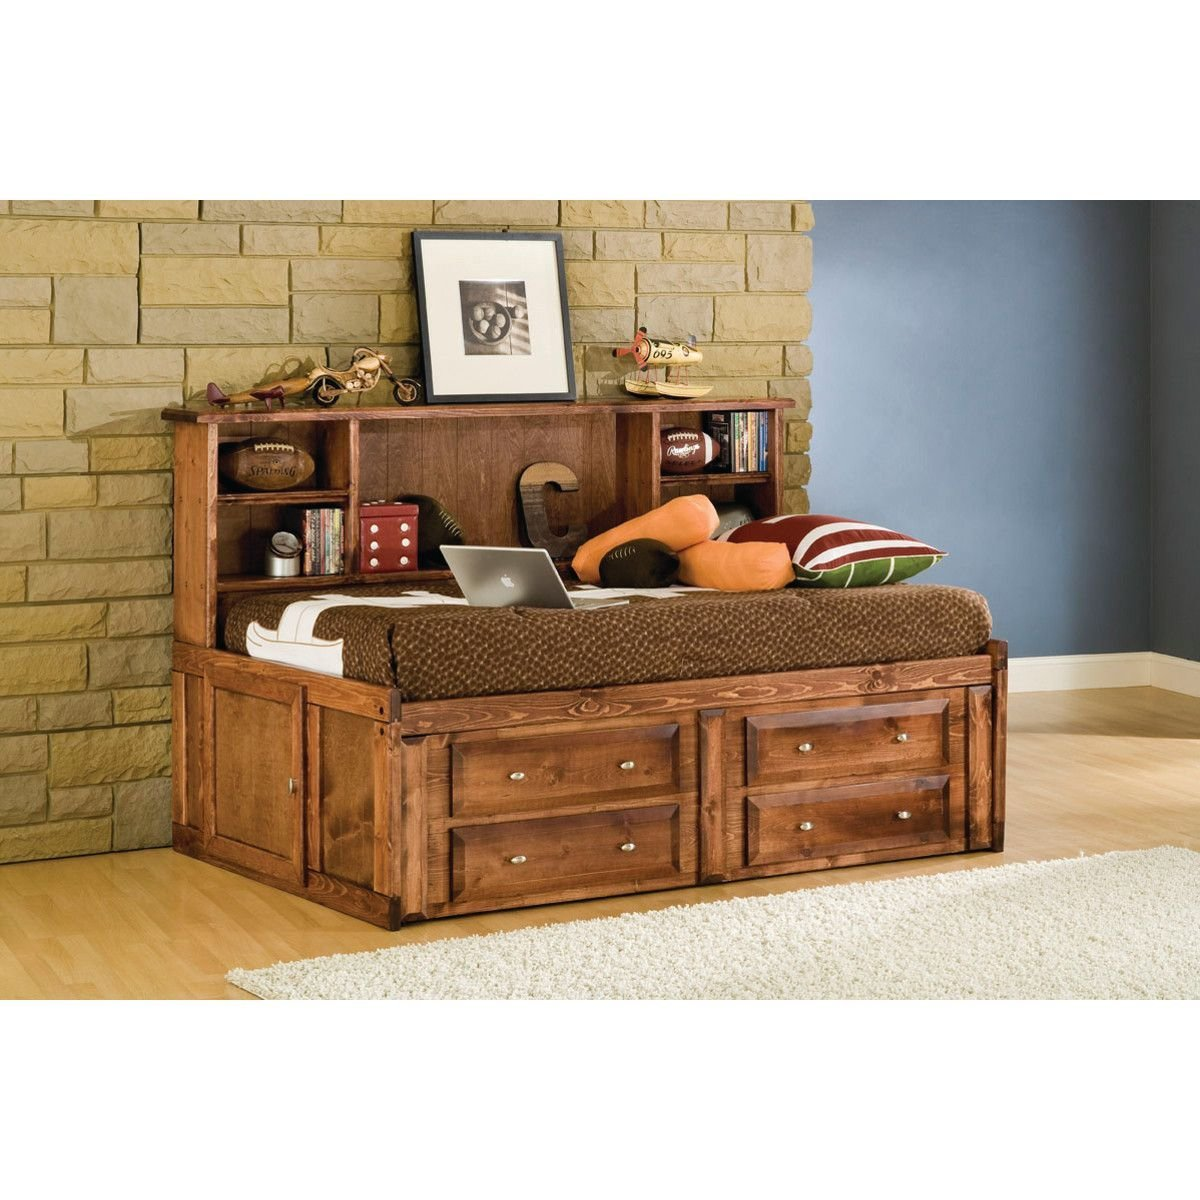 Best Visions Studio Bedroom Bed Underdresser Twin Cocoa With Pictures